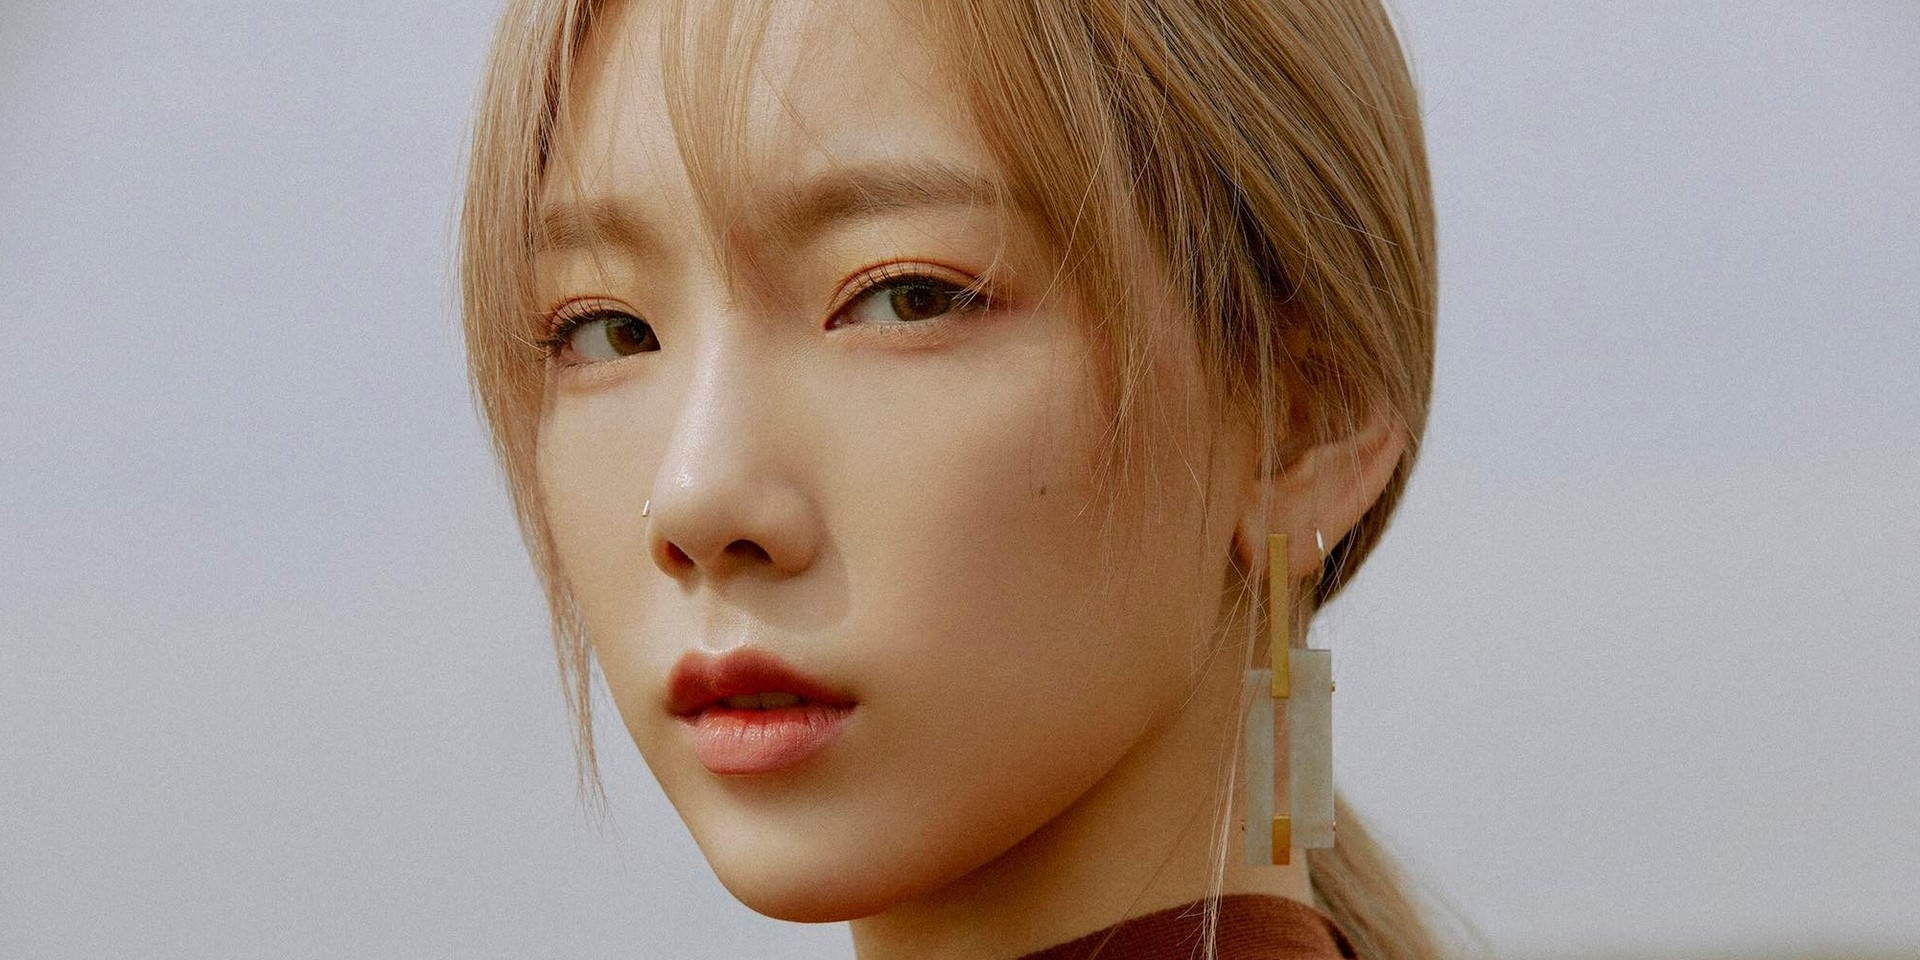 TAEYEON concert in Singapore postponed